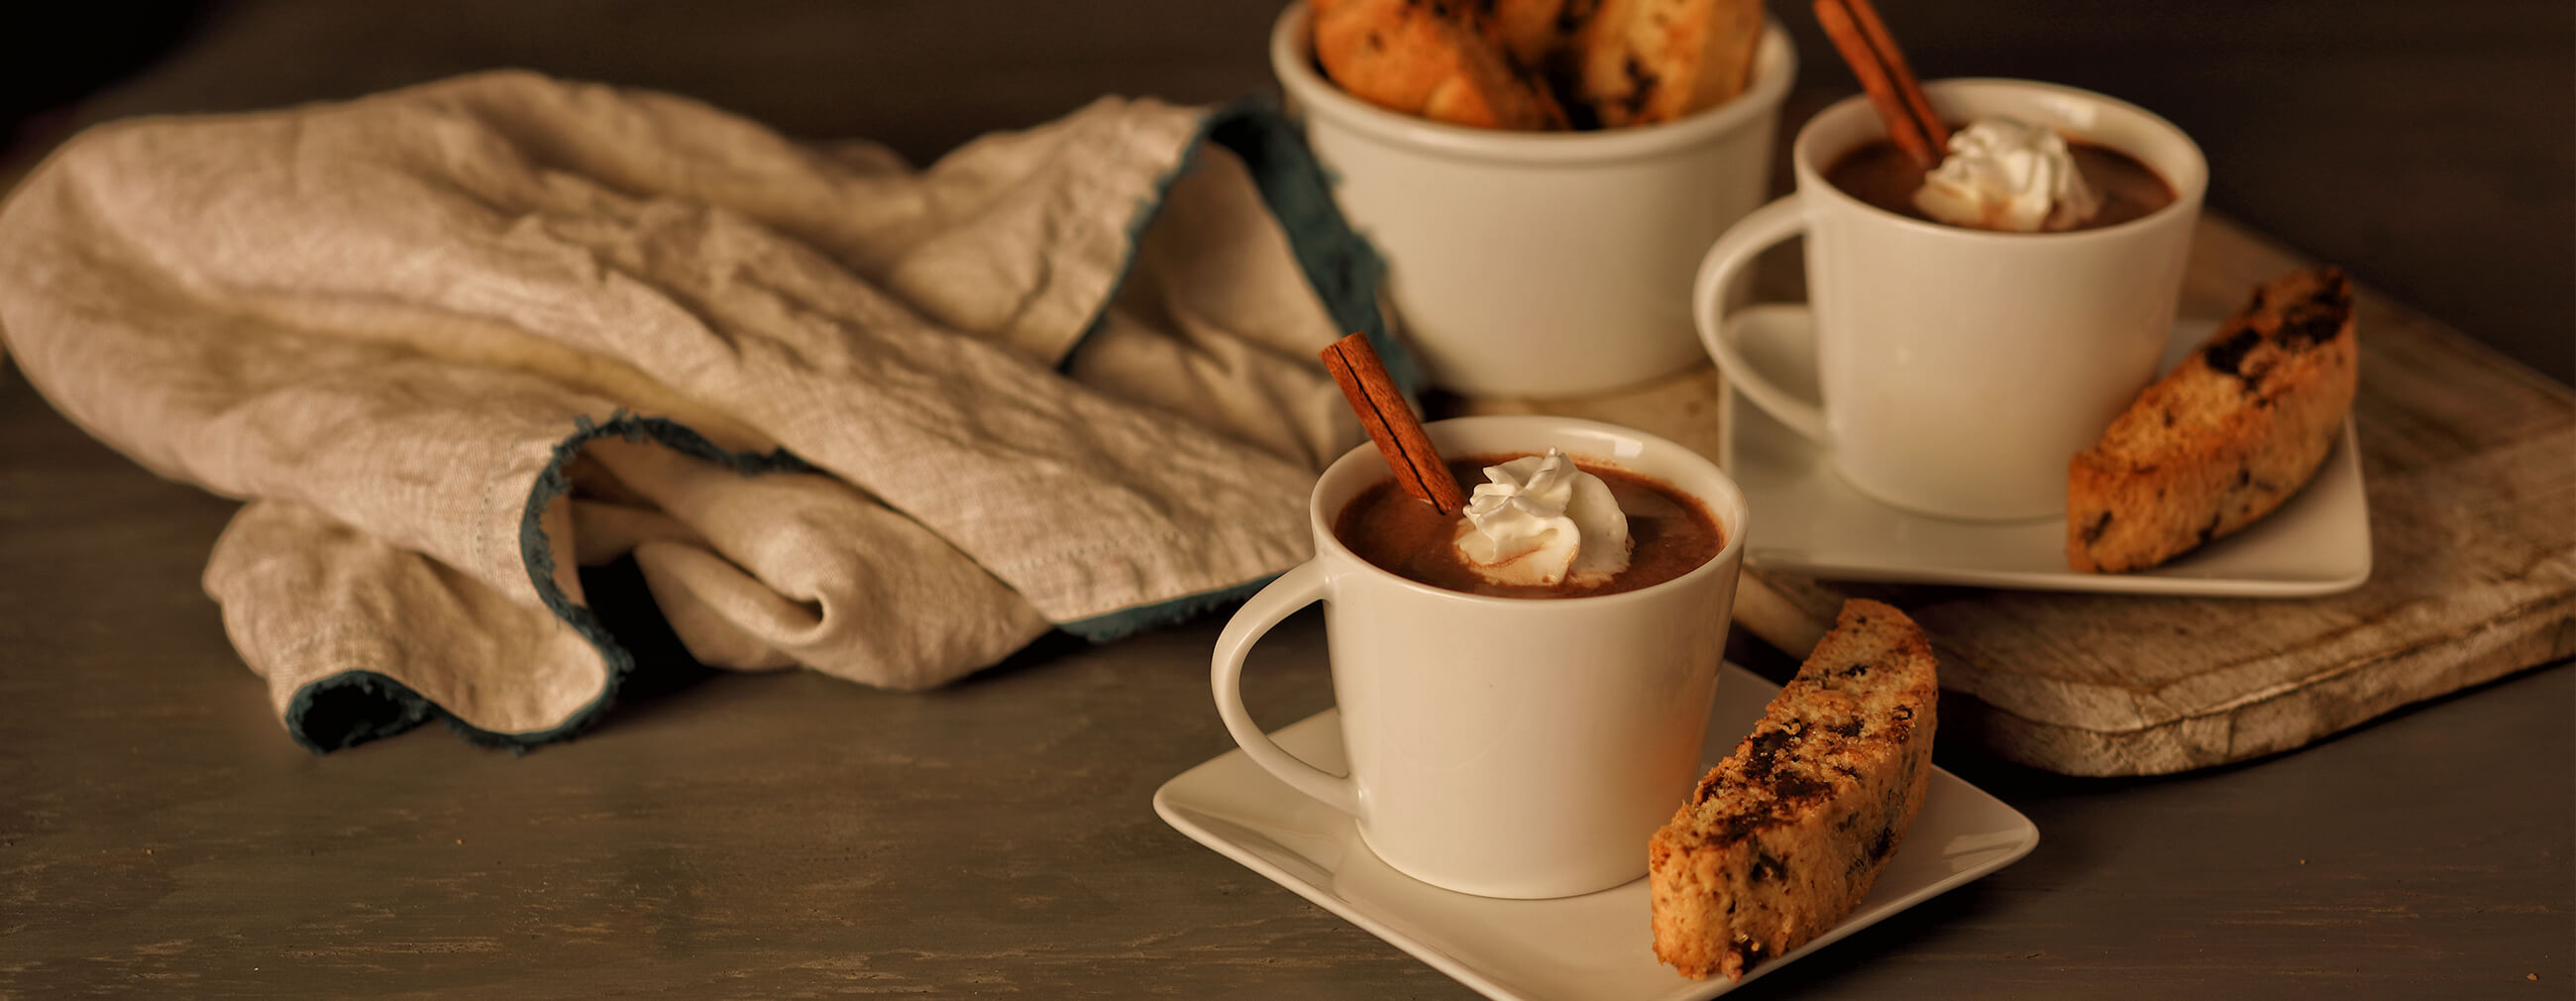 Double Chocolate Cinnamon Spiked Hot Cocoa